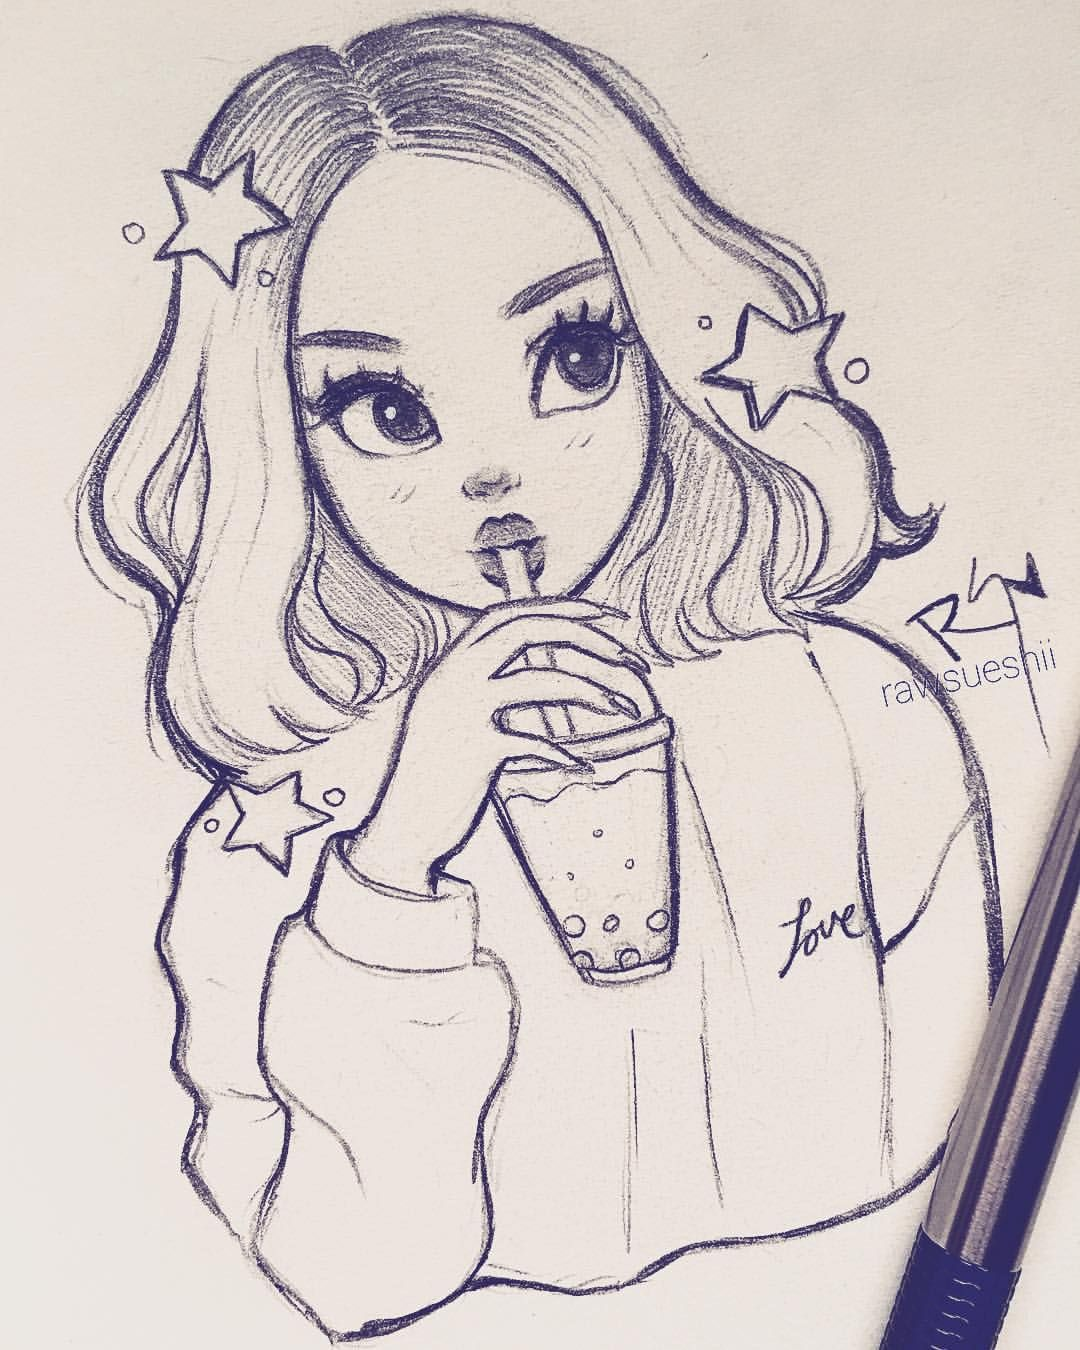 Image Shared By Hellololipop110 Find Images And Videos About Cute Drawing And Doodles On We Heart It The App To Get Lost Simple Doodles Doodle Art Doodles